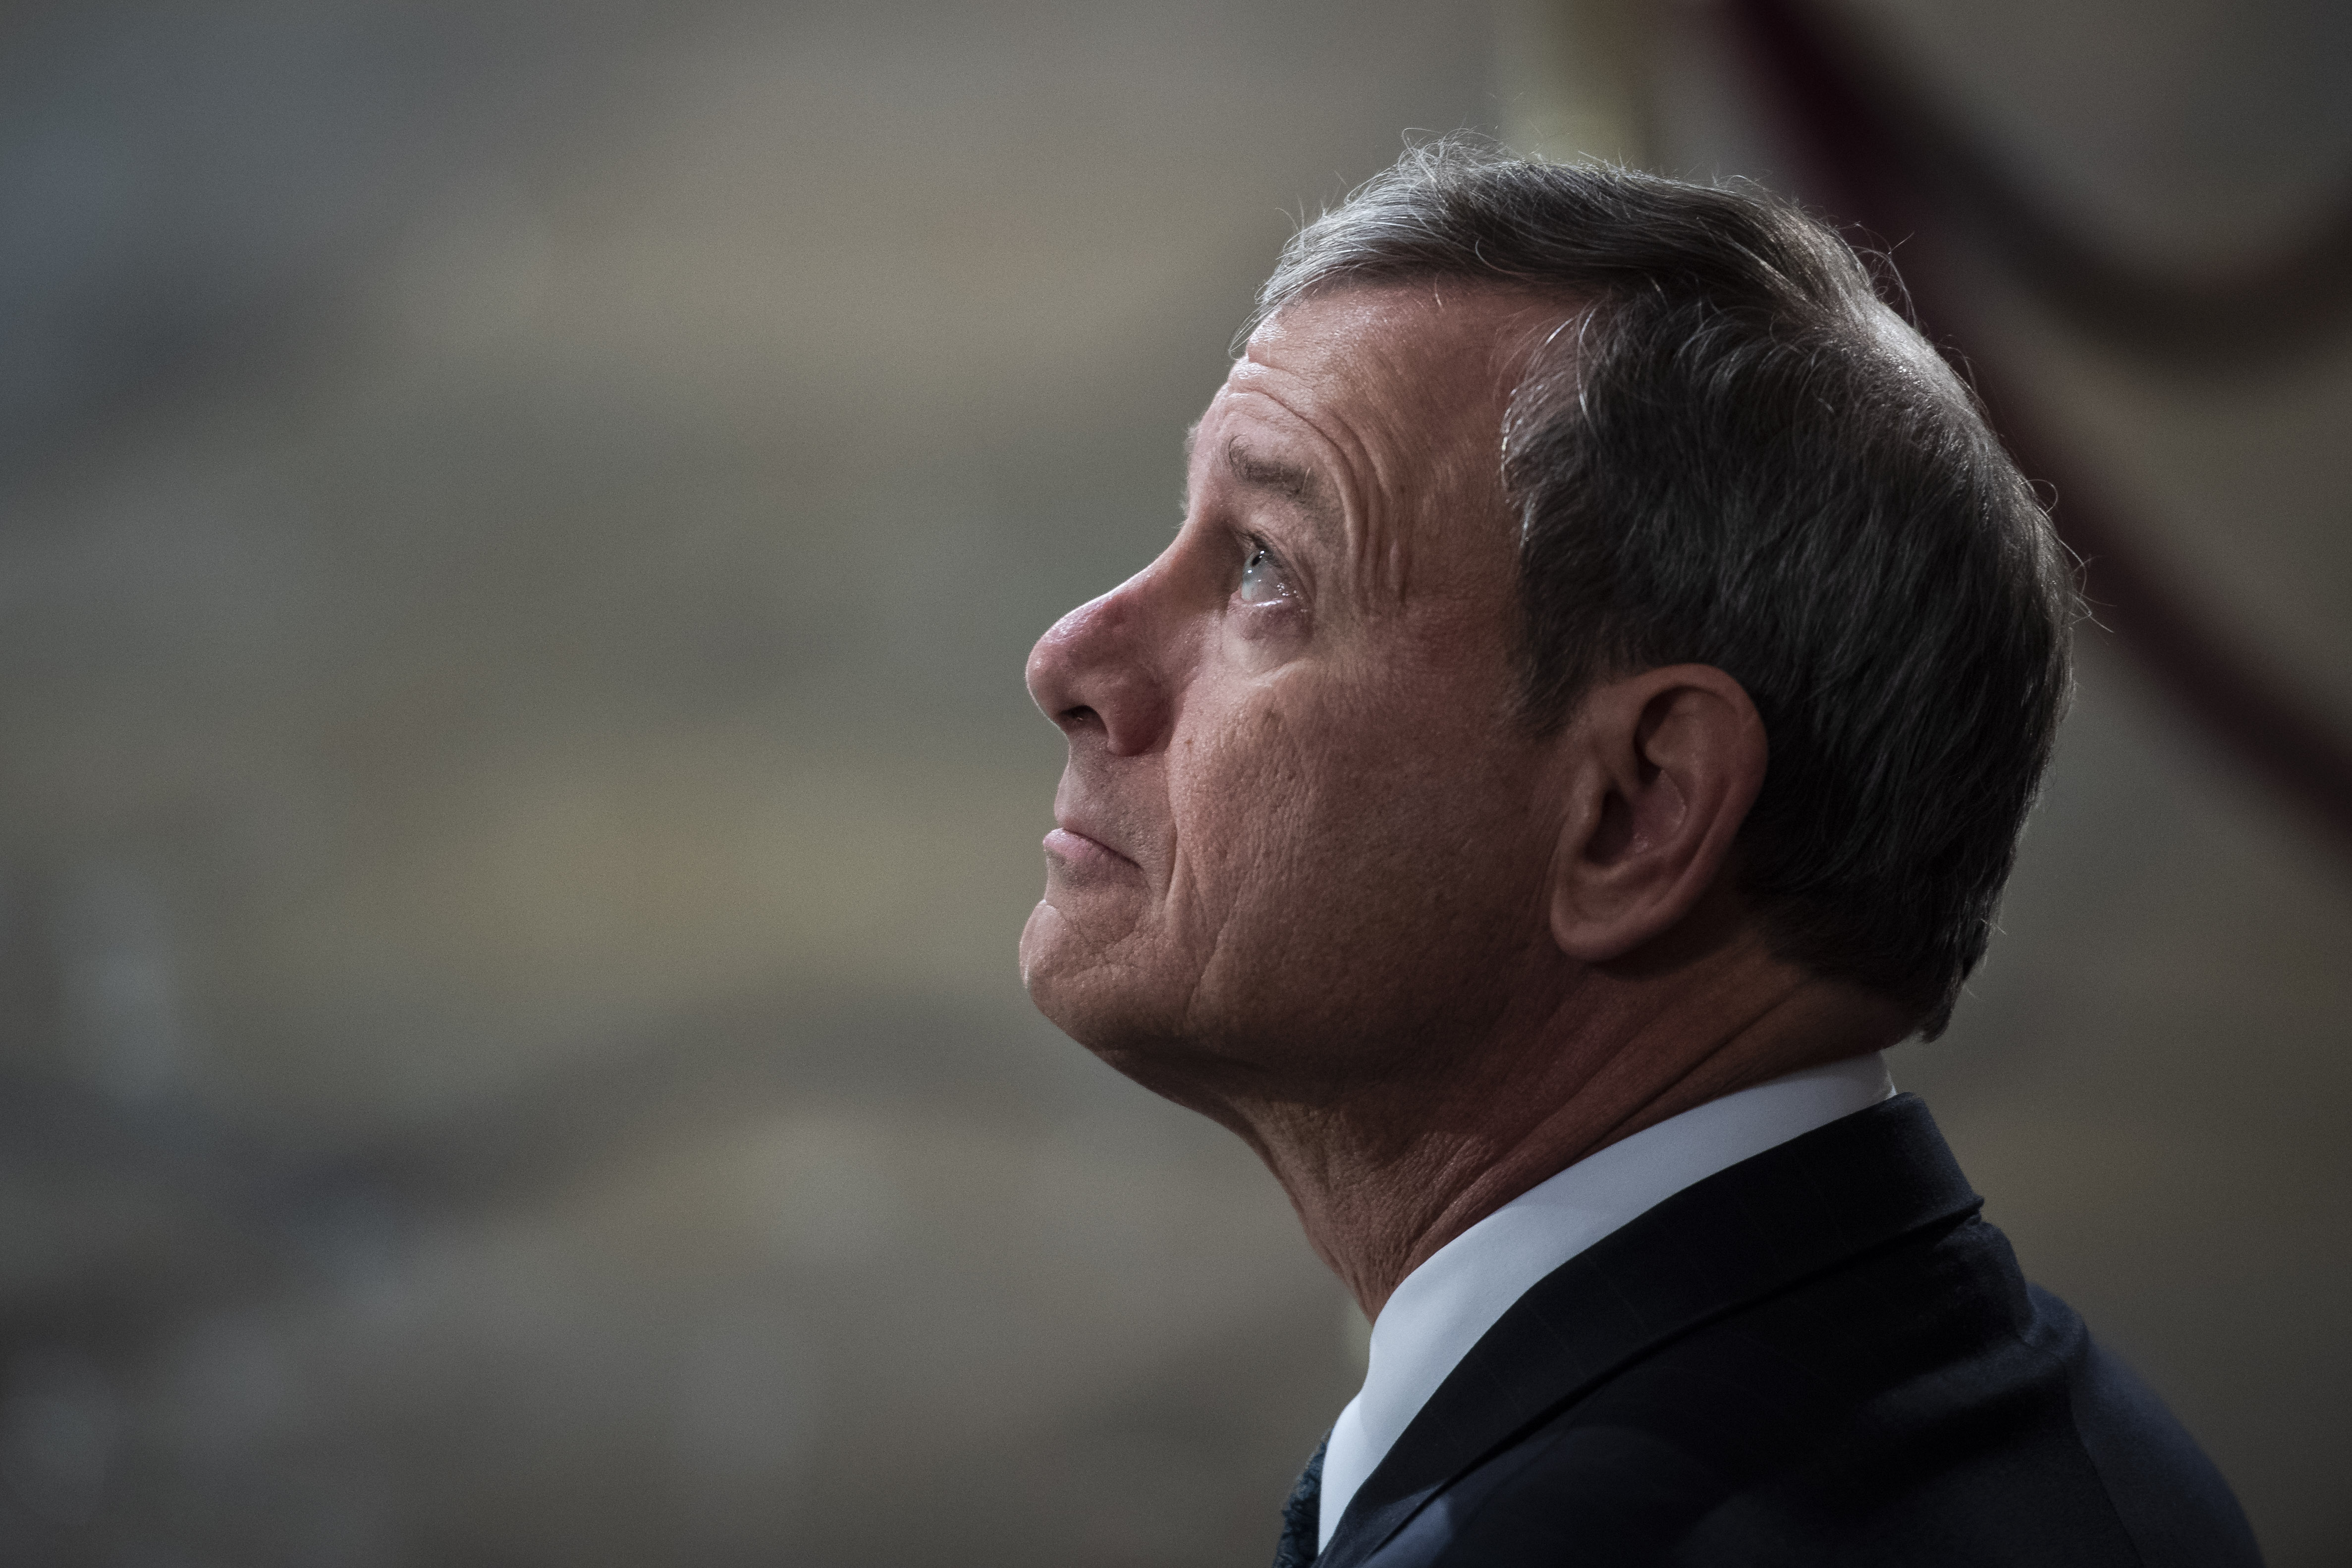 Chief Justice John Roberts at the Capitol Rotunda on December 3, 2018. (Jabin Botsford/Pool/Getty Images)